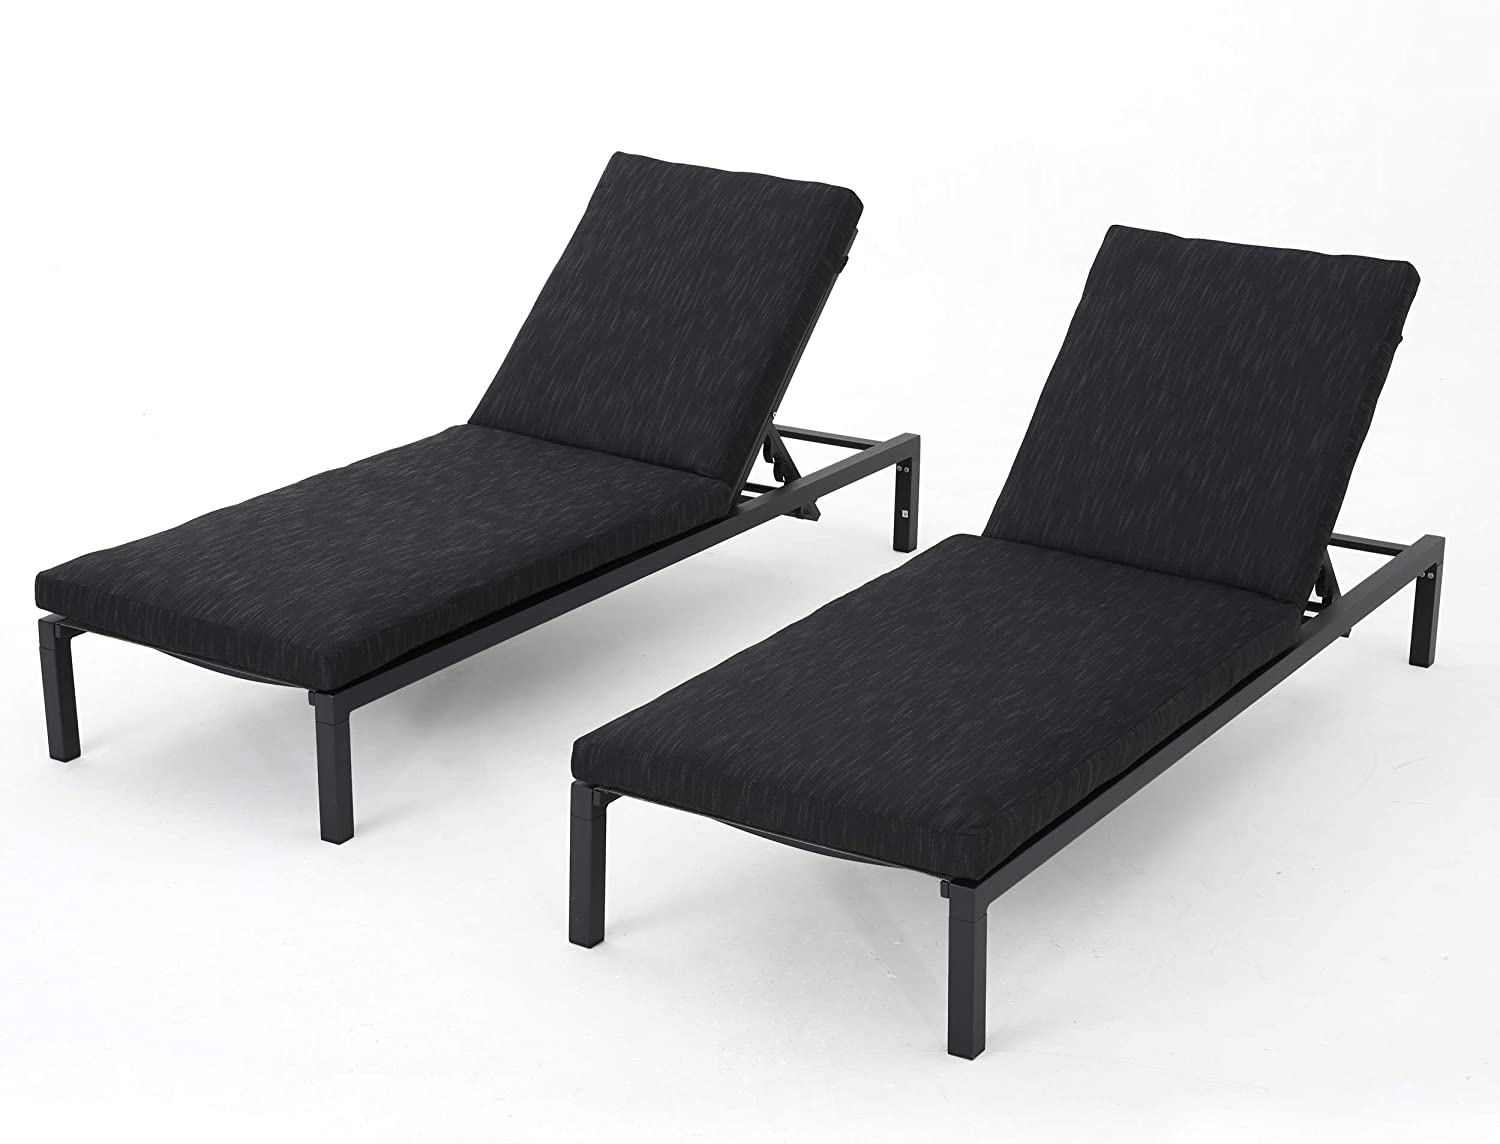 Christopher Knight Home Navan Outdoor Chaise Lounges with Aluminum Frame and Water Resistant Cushion, 2-Pcs Set, Dark Grey / Black